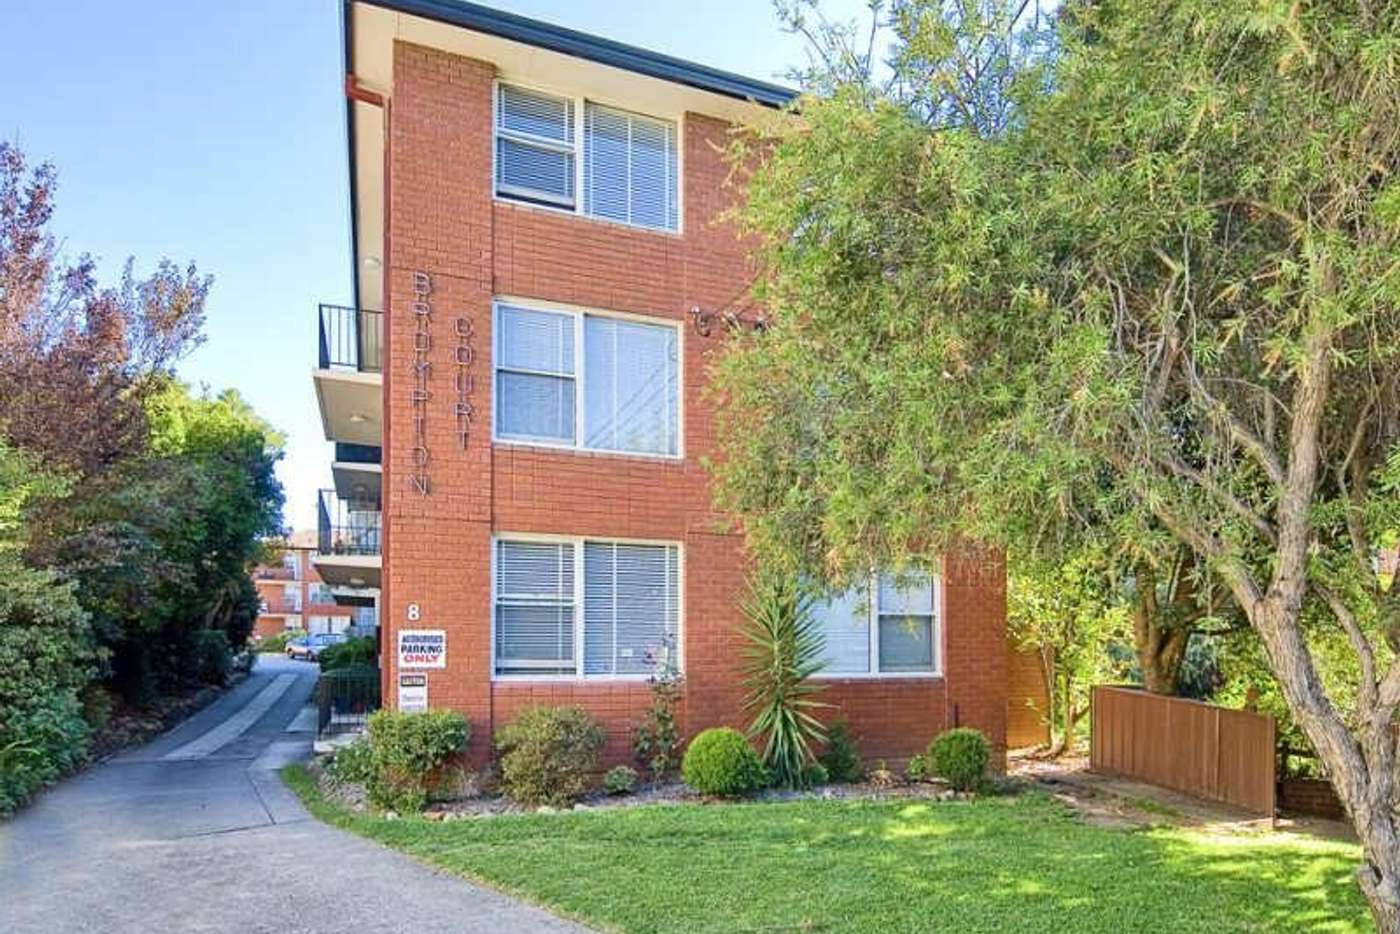 Main view of Homely unit listing, 12/8 Webbs Avenue, Ashfield NSW 2131